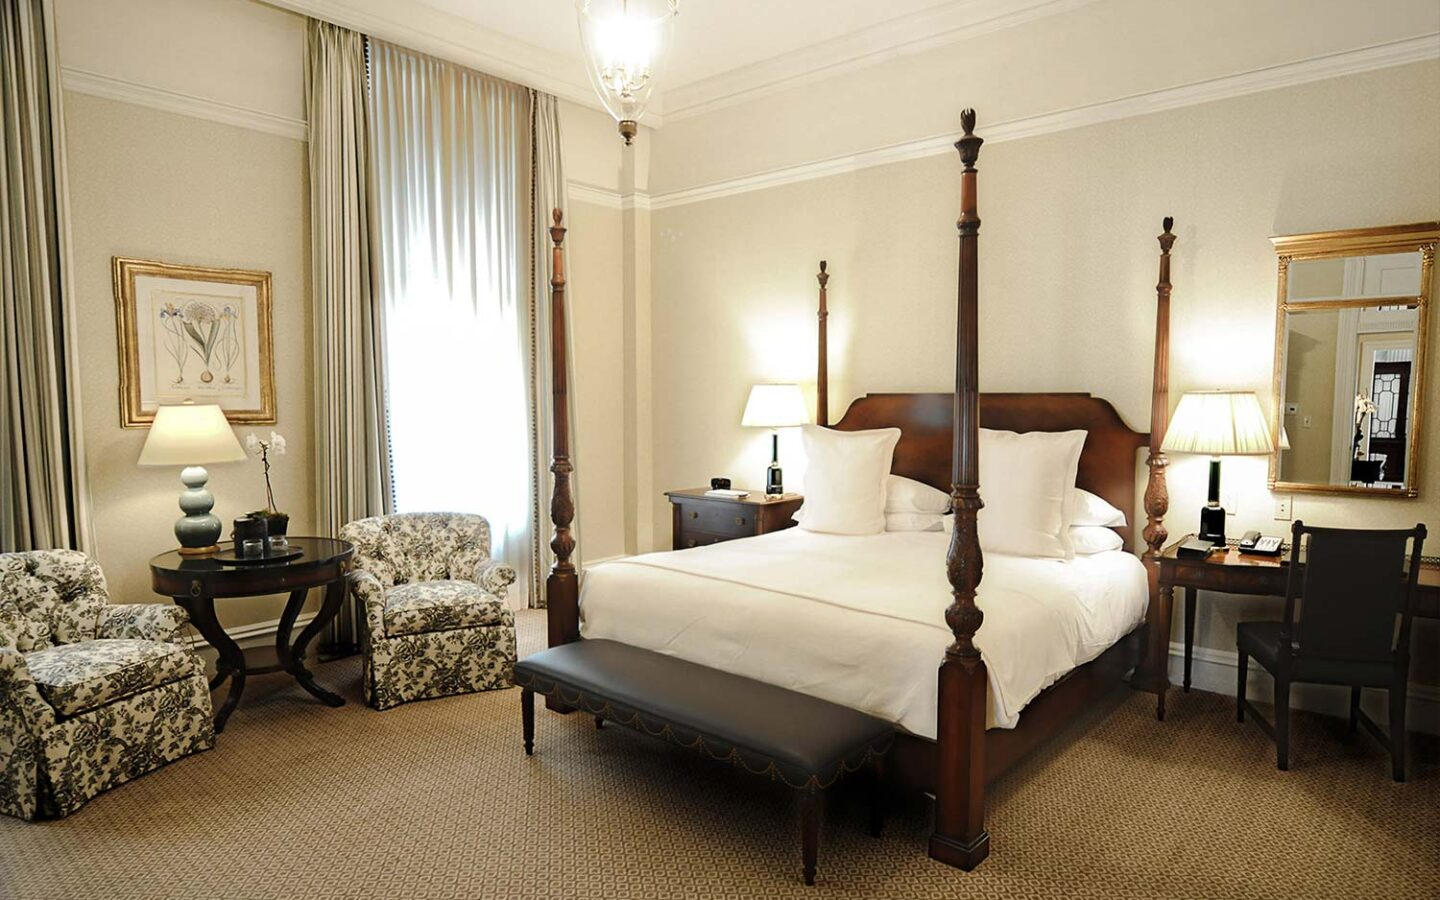 king bed with tall wooden bed posts with a desk and mirror and a small seating area